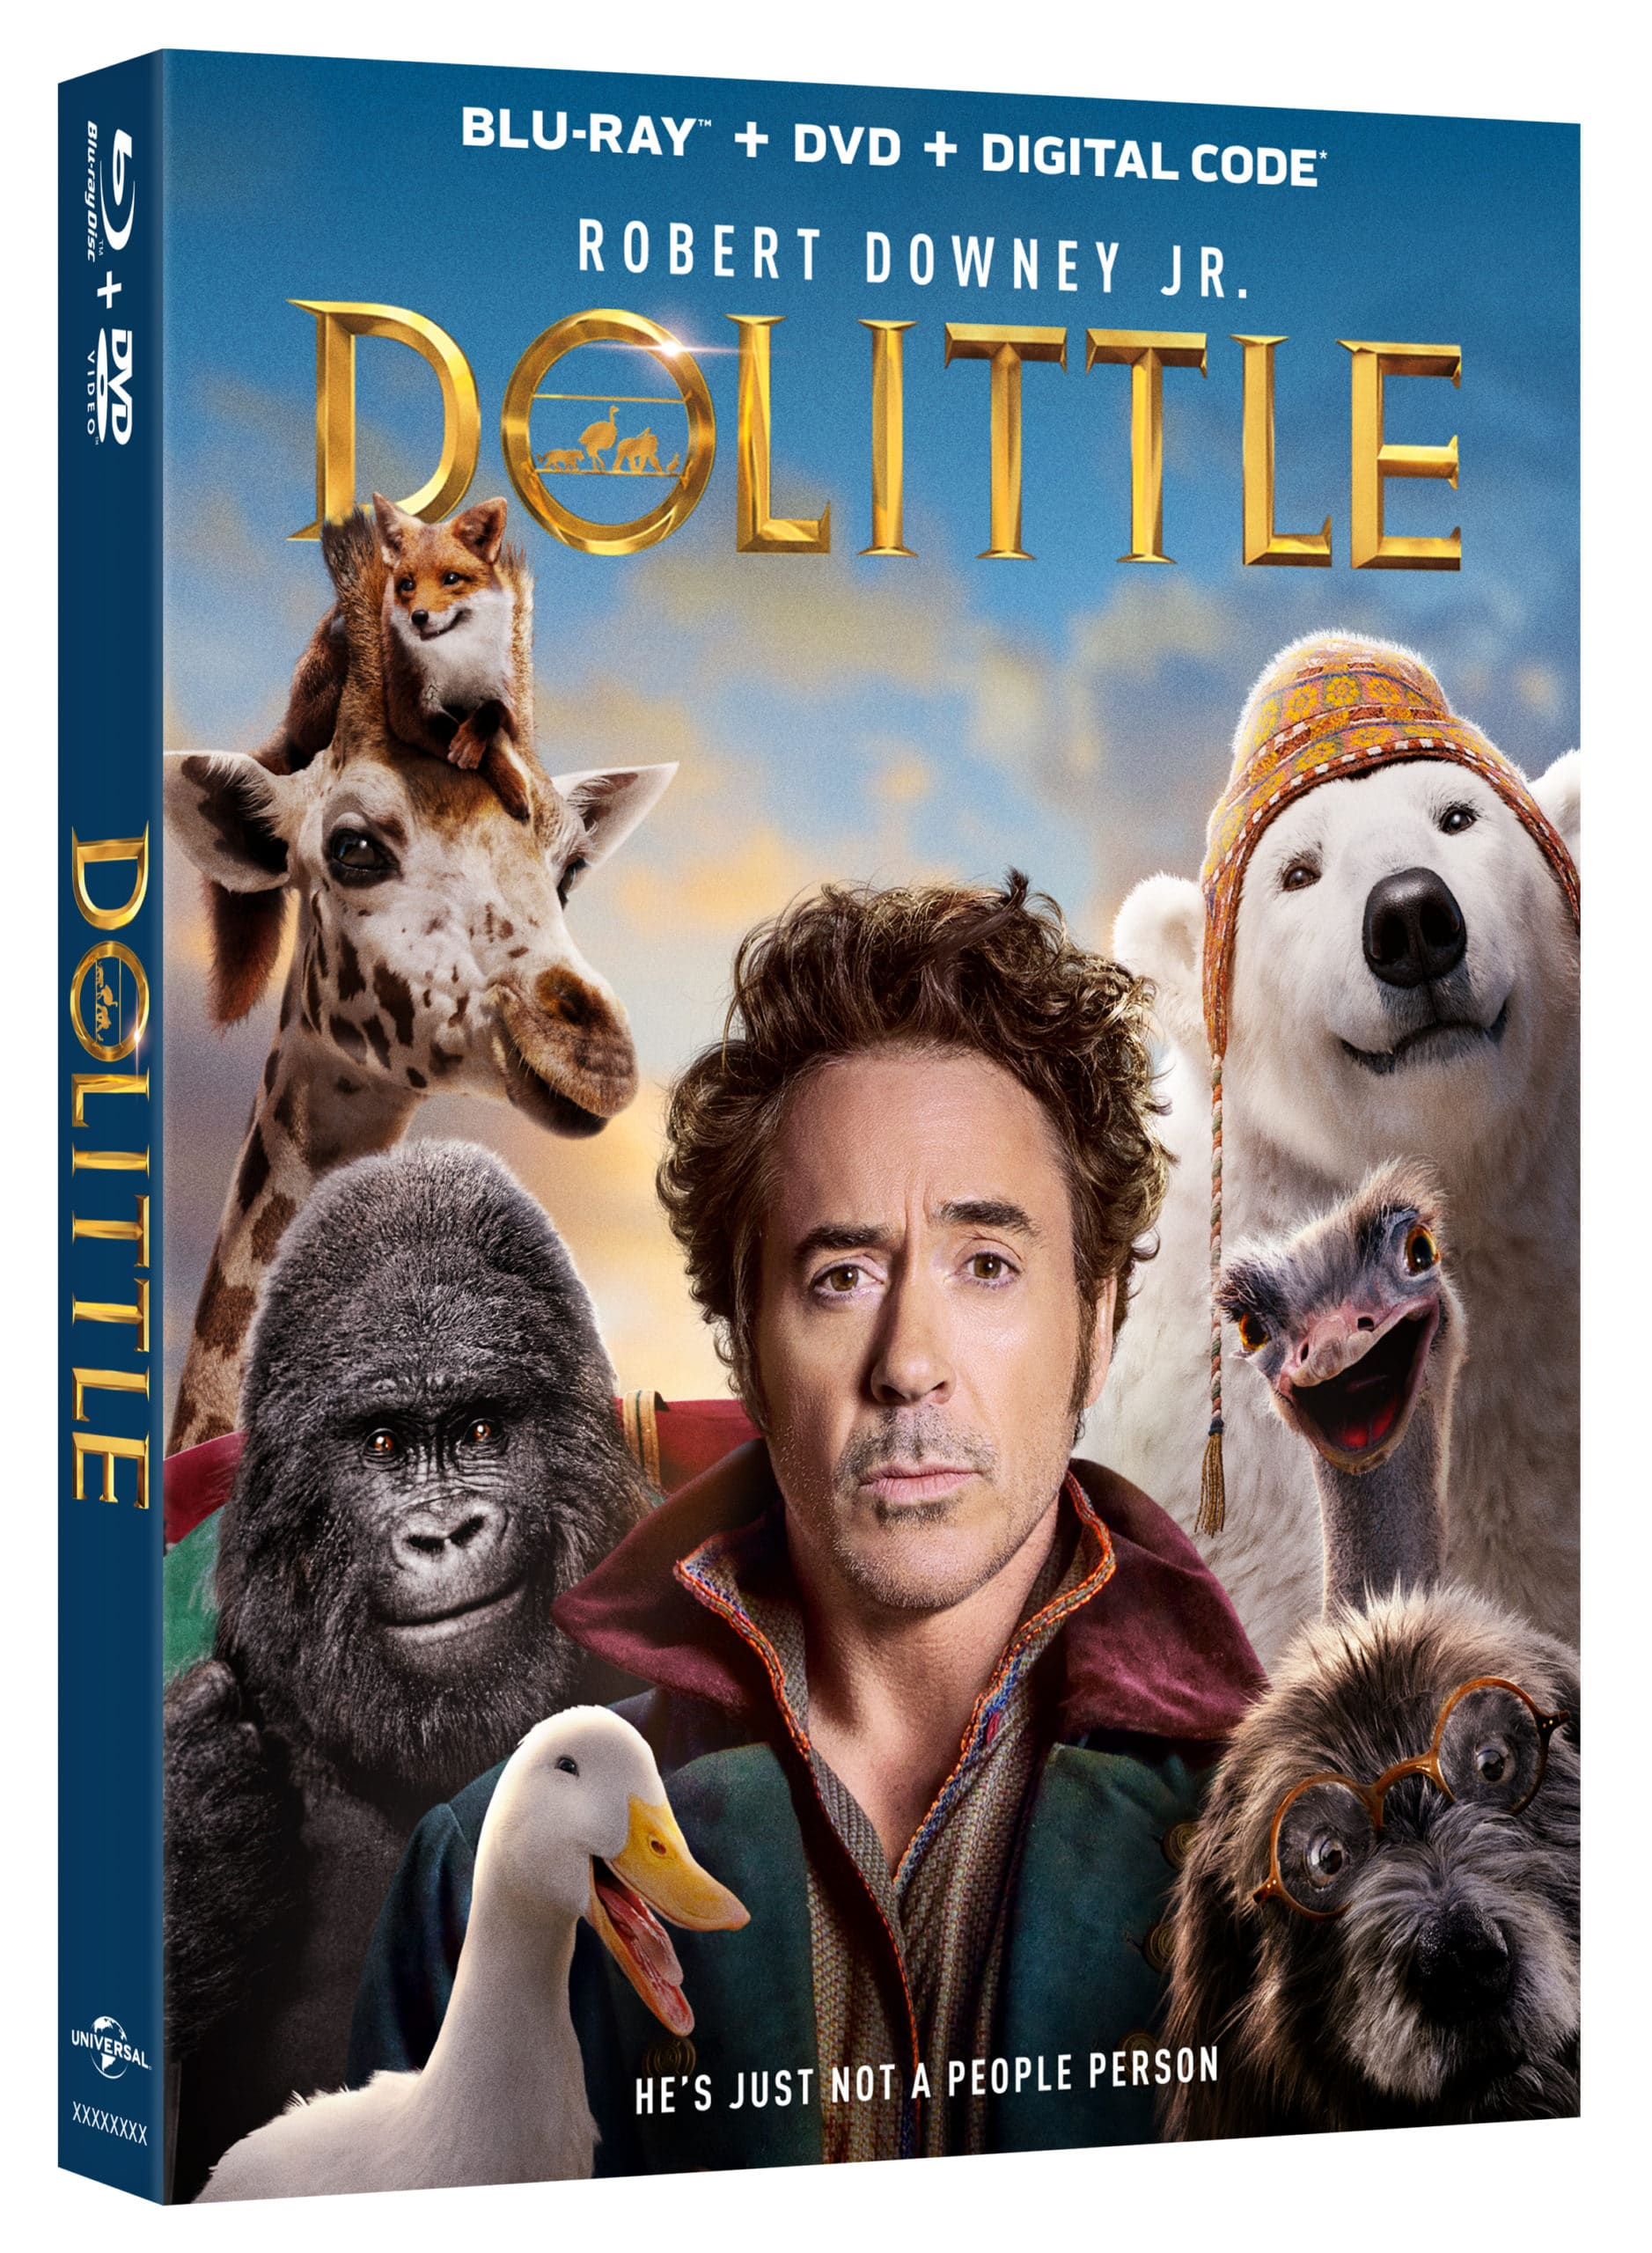 Own the movie all the animals are talking about and go an epic journey with a hilarious always cold bear, an anxious gorilla, a lovable giraffe, a ferocious tiger, and more! Dolittle availableon 4K Ultra HD™, Blu-ray™, DVD and On Demand TODAY!